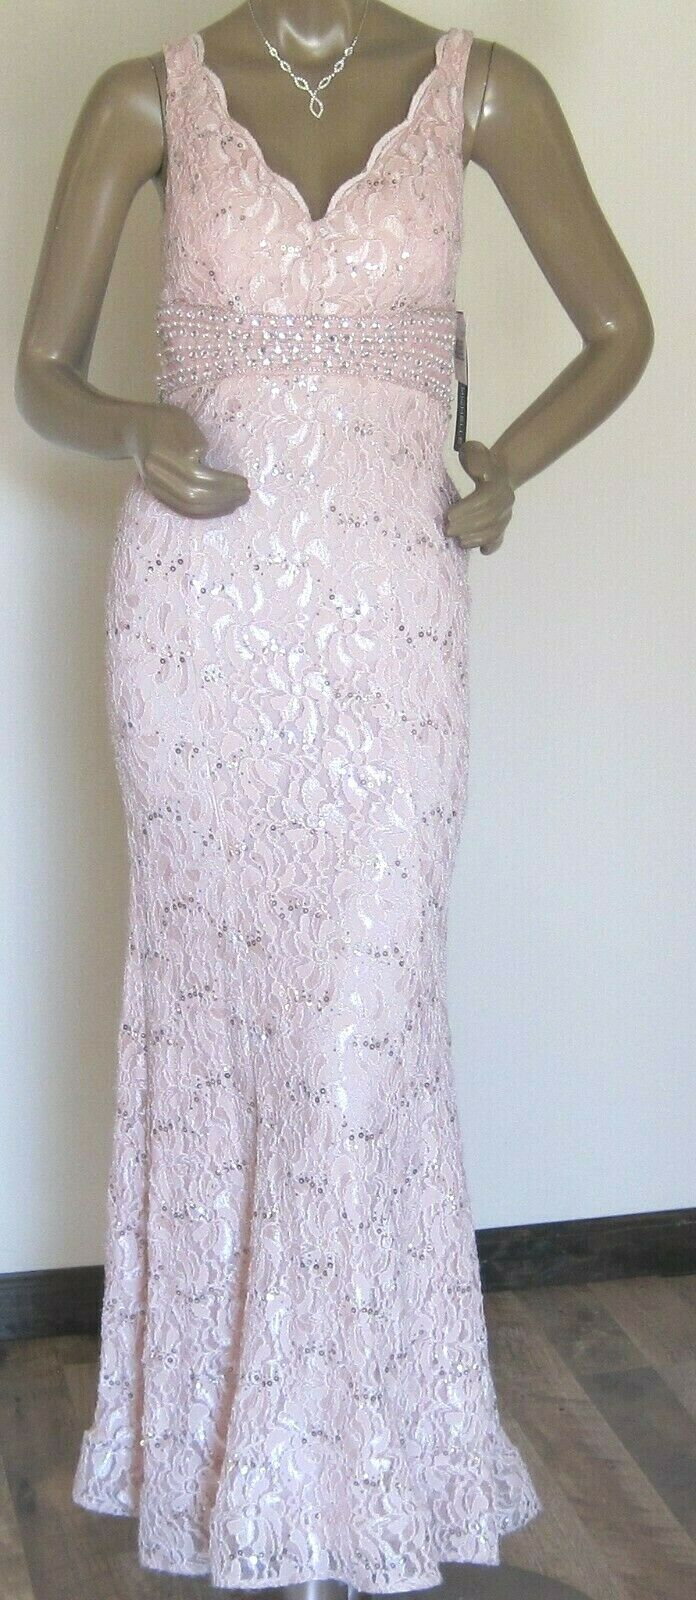 My Michelle Dress Gown Womens NEW Pink Lace With Gems Prom Cruise NEW